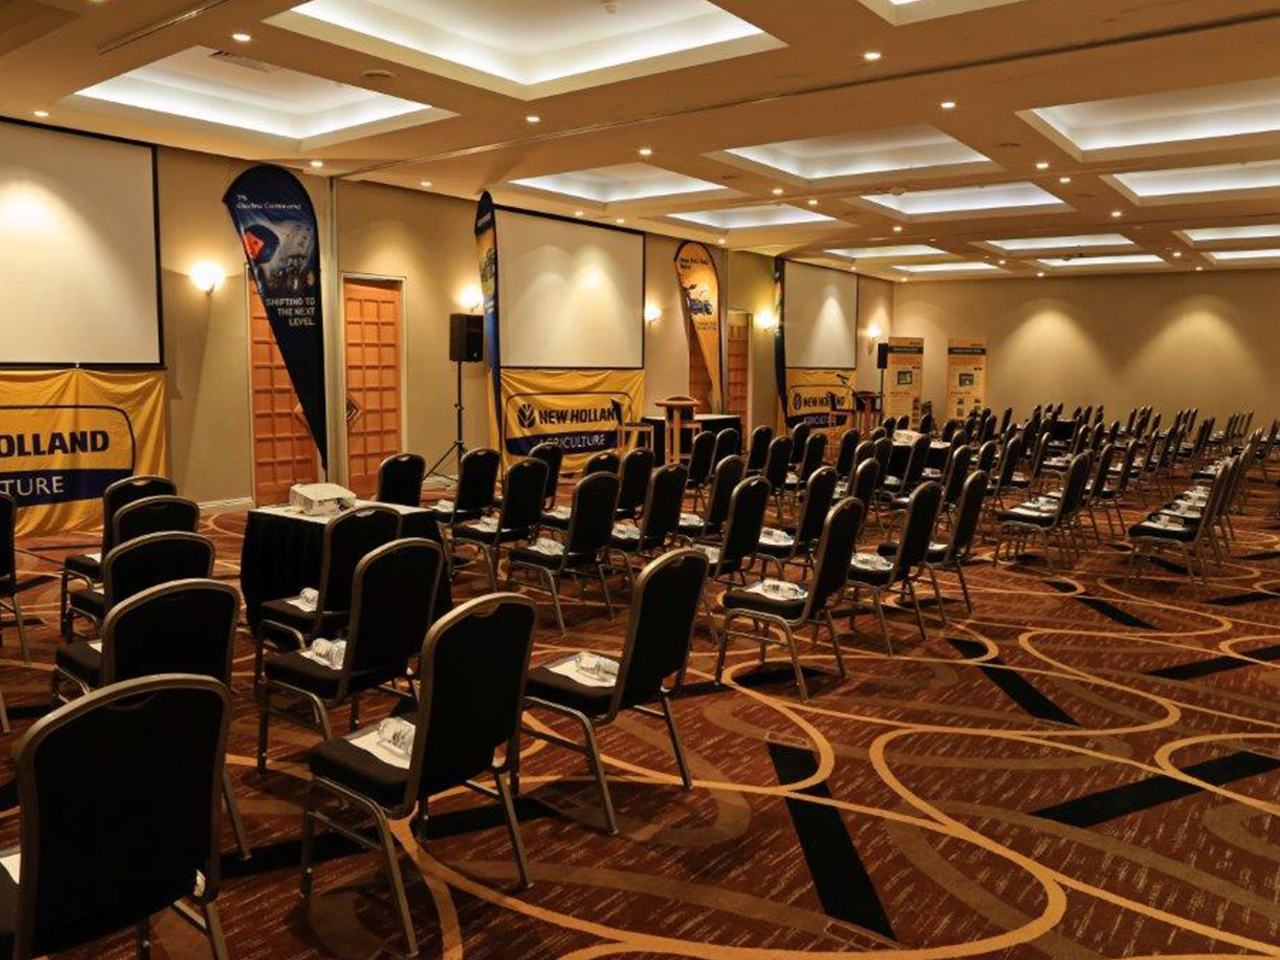 Chairs in Theatre Style Setup Inside The Swan Valley Function Room With 3 Projection Screens